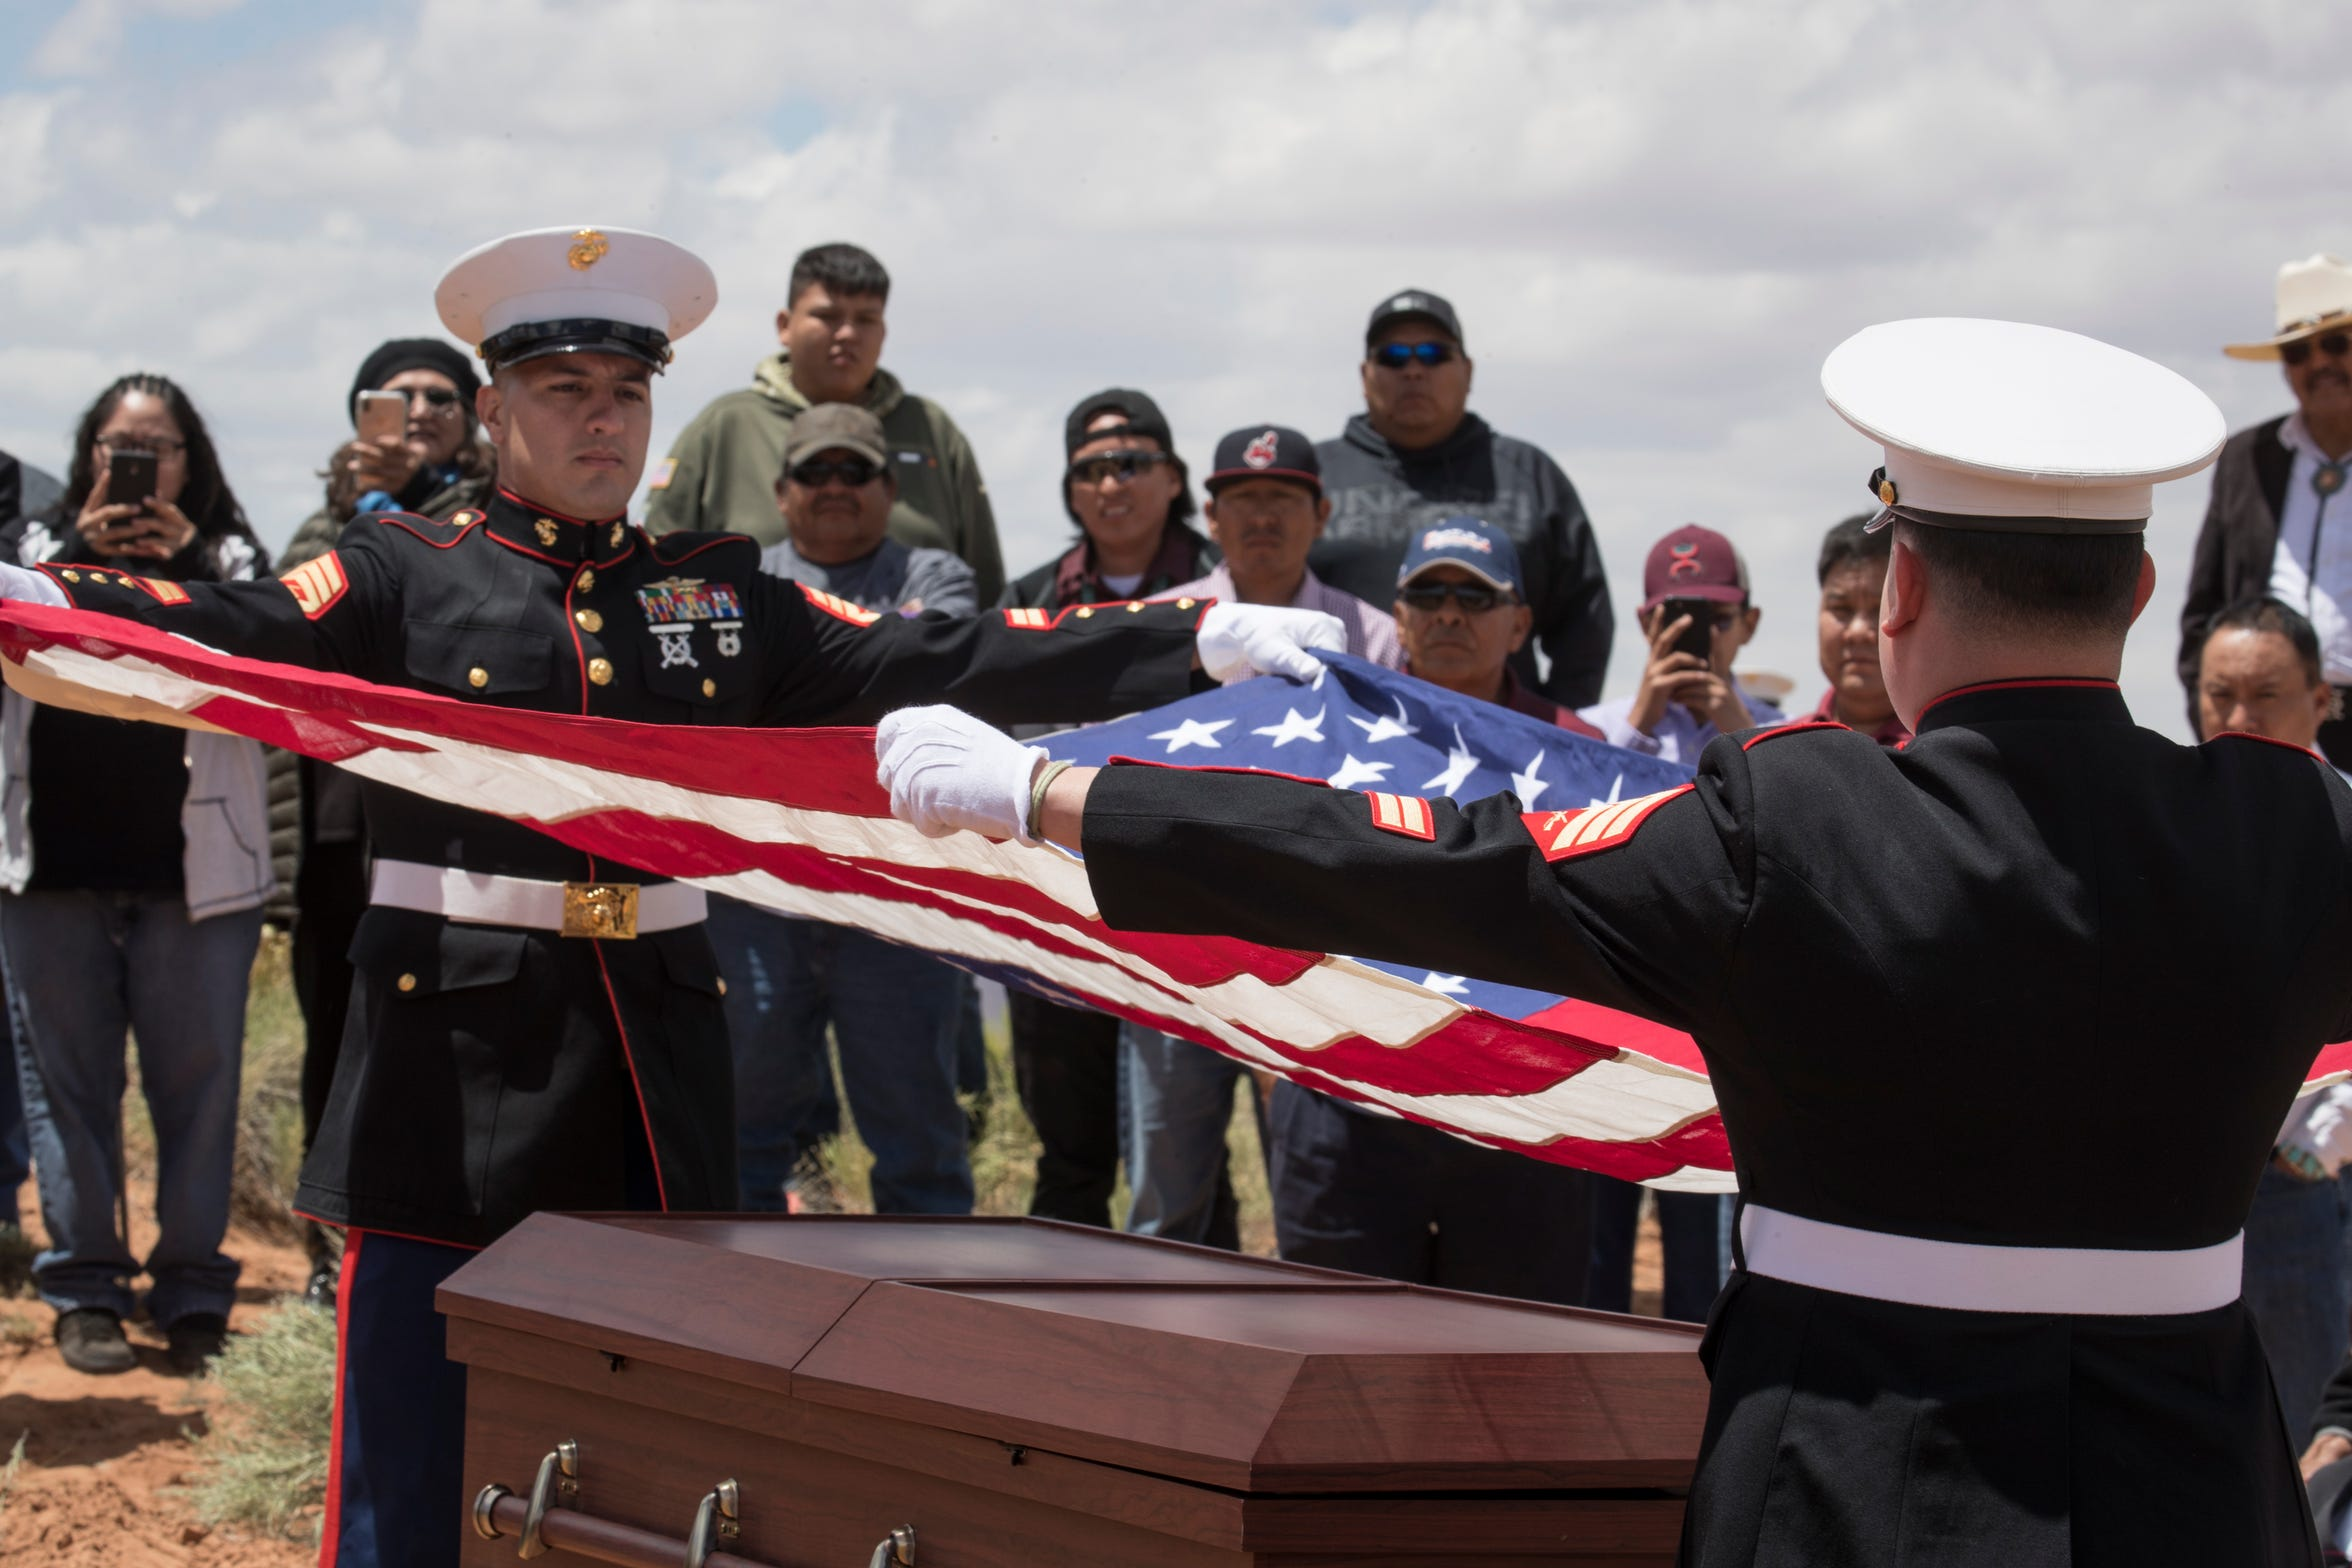 The flag was folded and presented to family during the interment of Navajo Code Talker Fleming Begaye Sr. on May 17, 2019, at the family plot in Salt Water Canyon, Ariz.